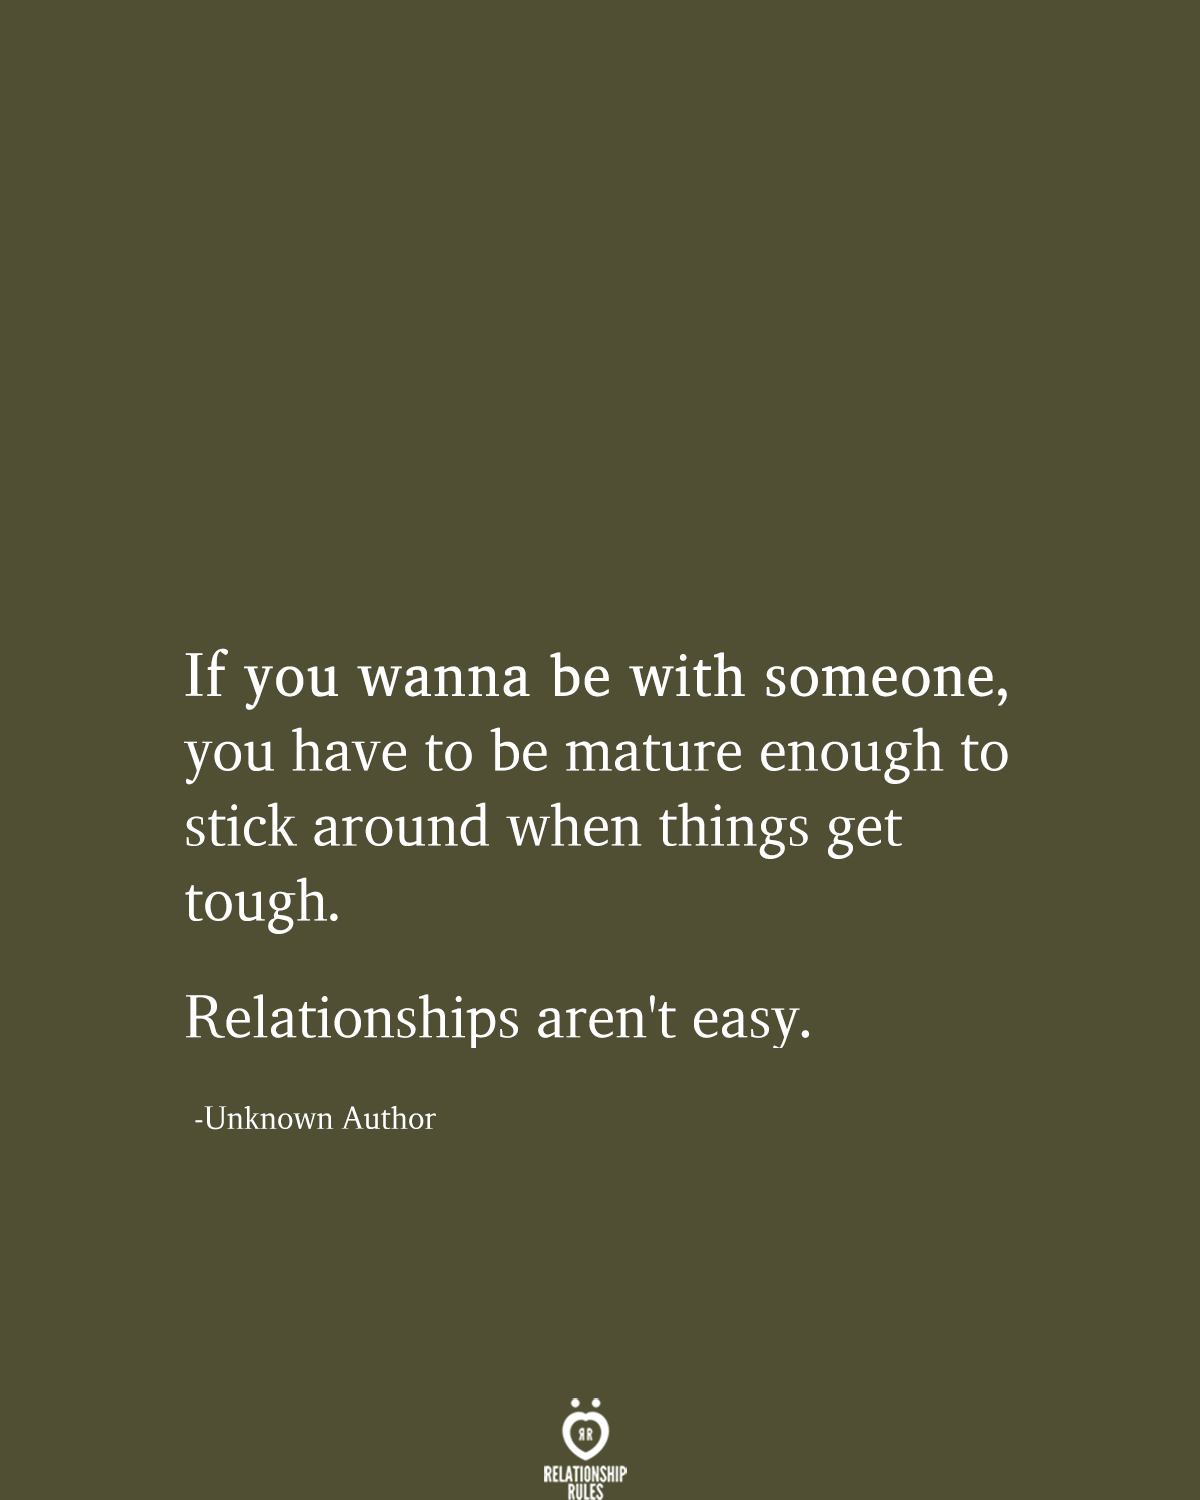 Relationship Quotes When Times Are Tough